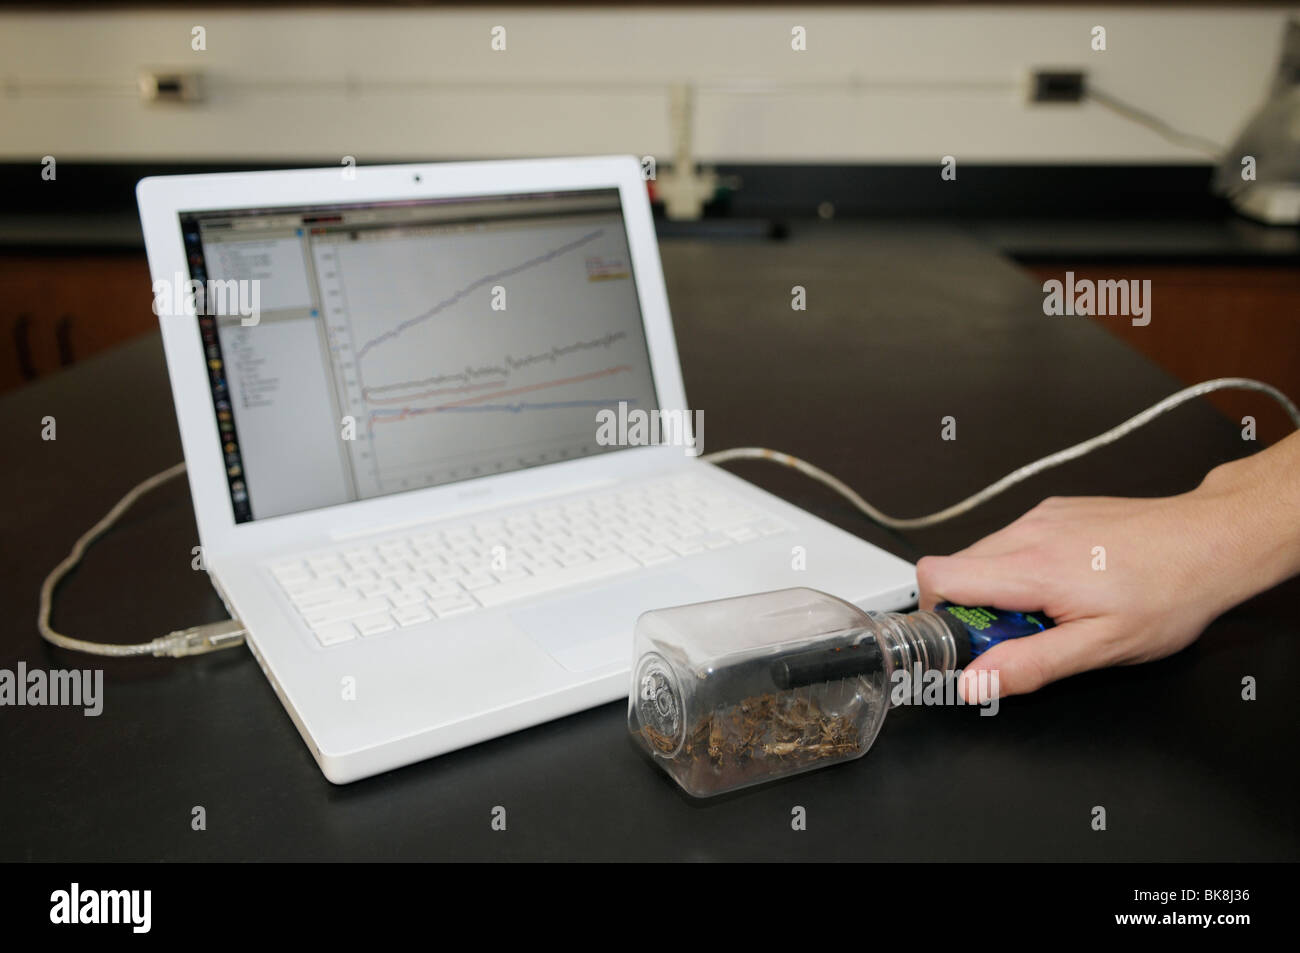 Computer interfaced carbon dioxide sensor measuring changes in CO2 over time resulting from aerobic respiration - Stock Image